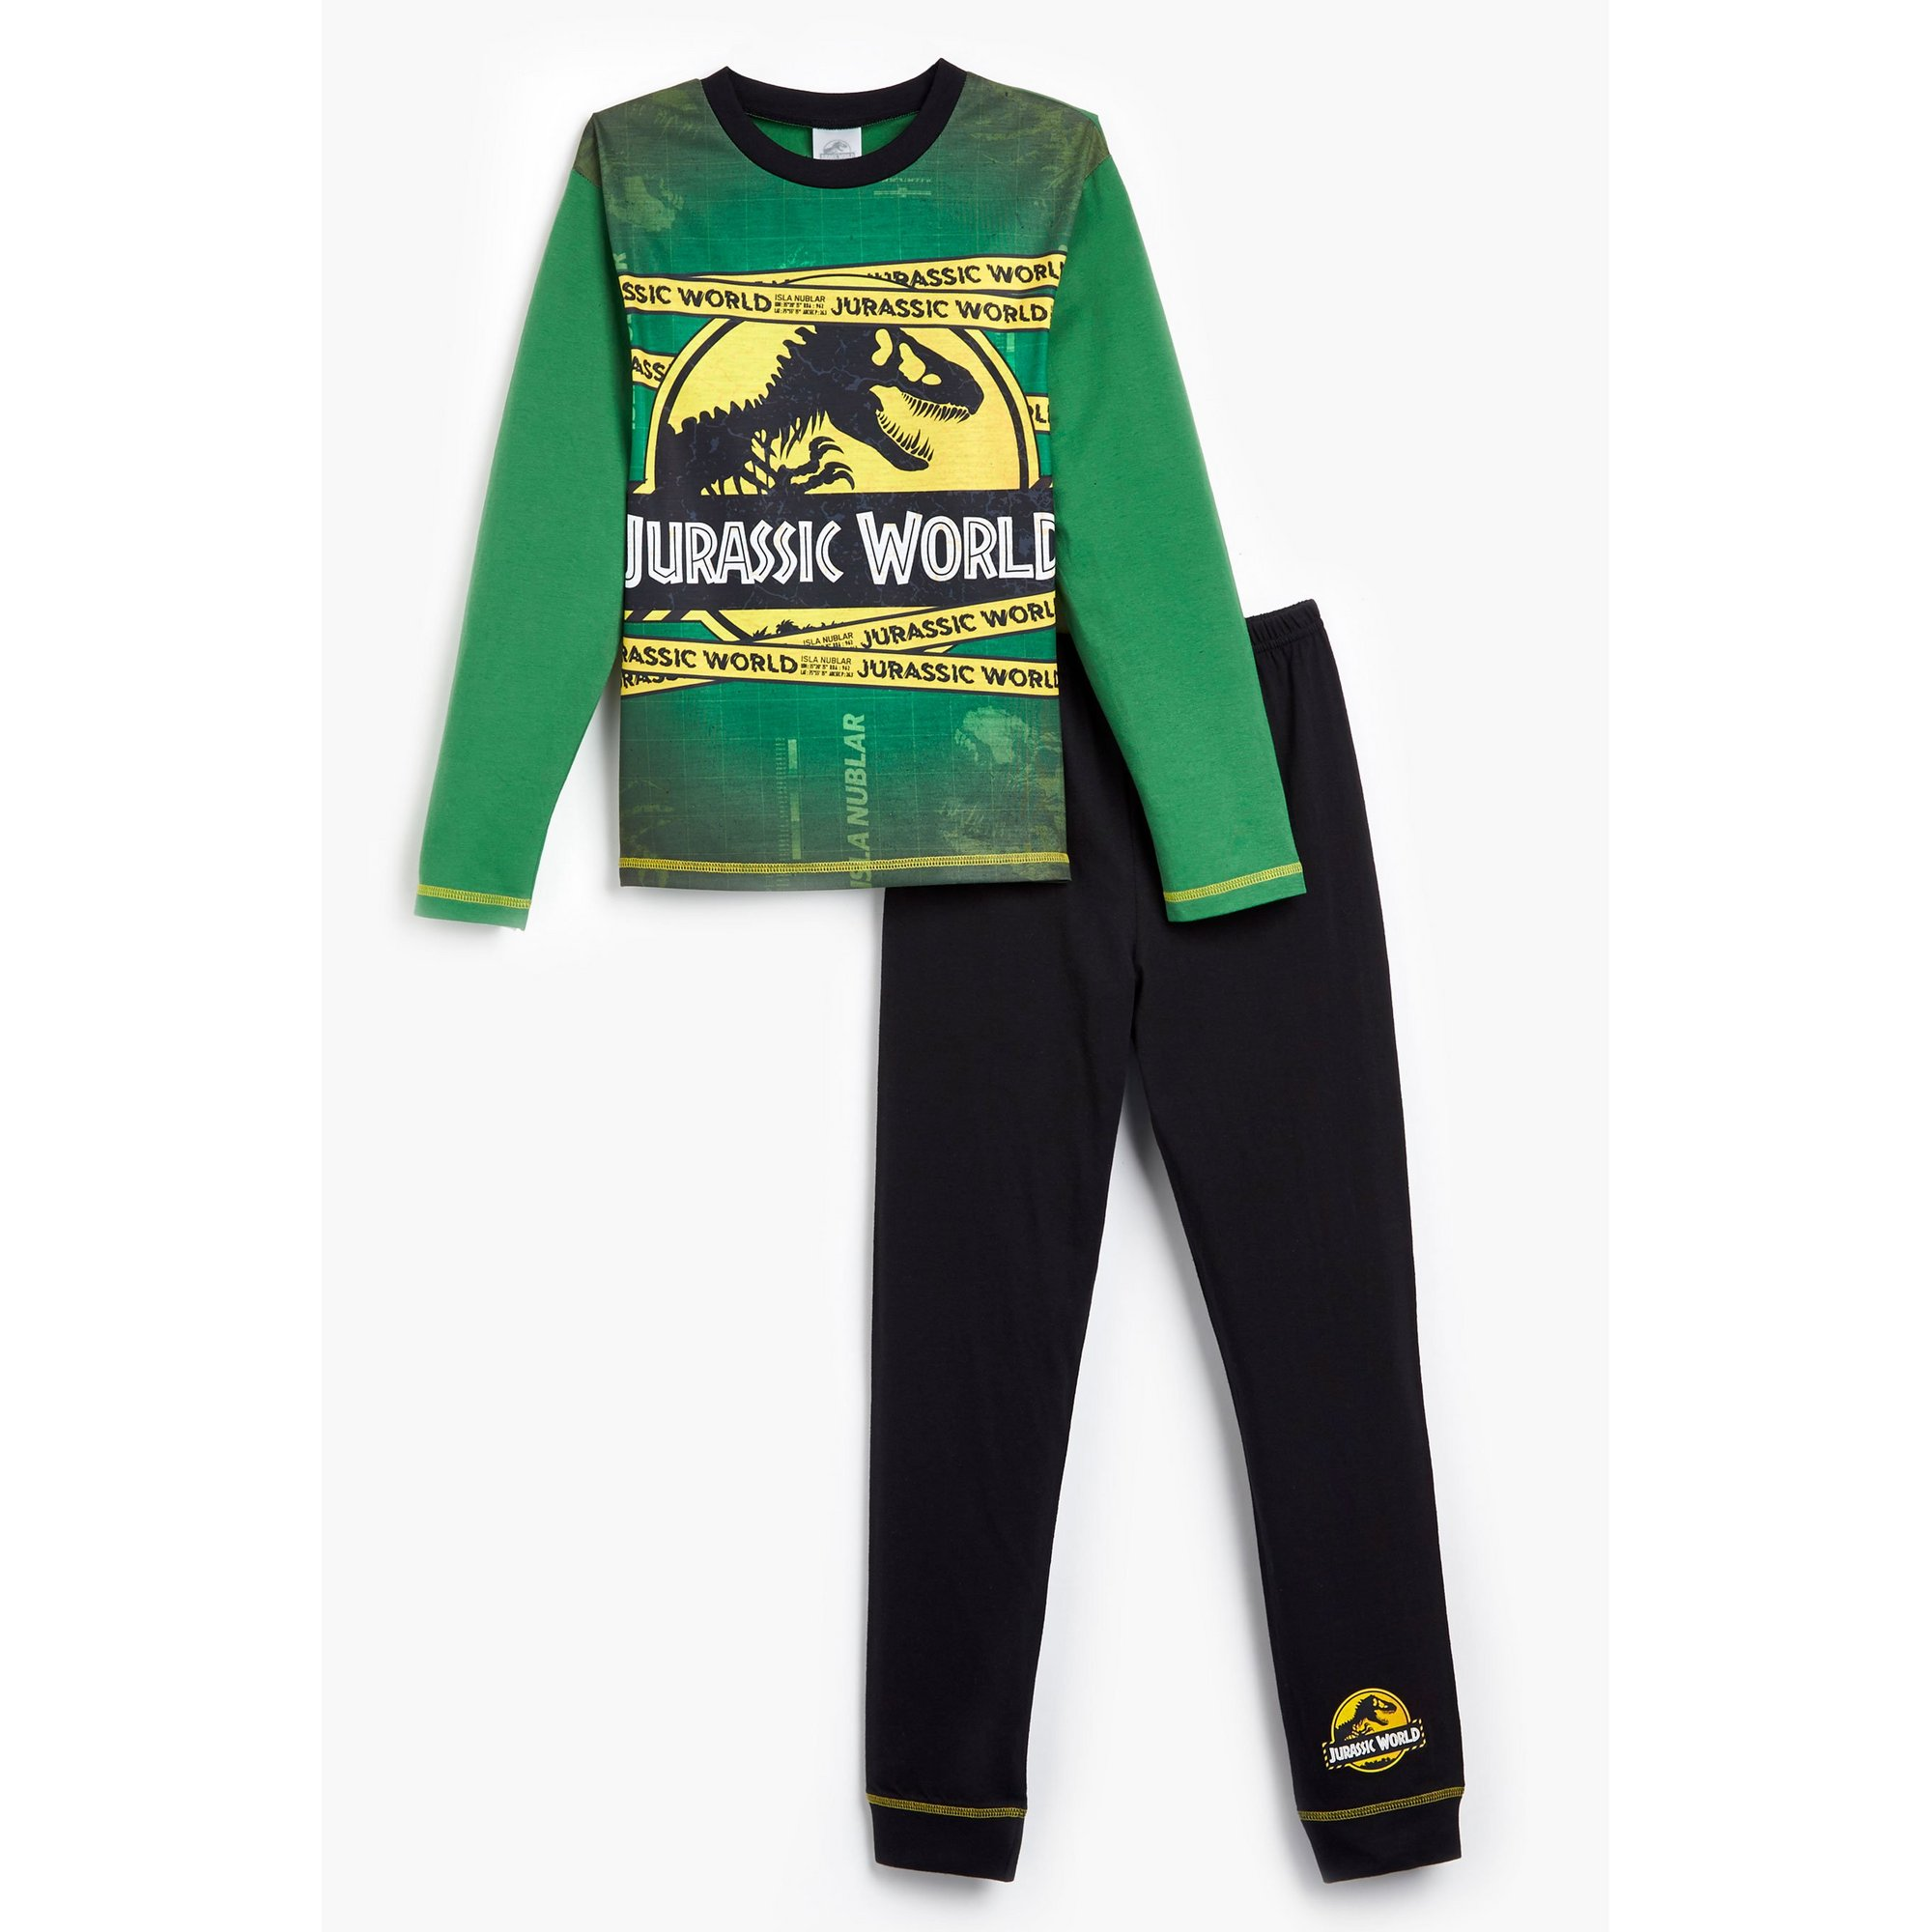 Image of Boys Jurassic World Long Sleeve Pyjamas